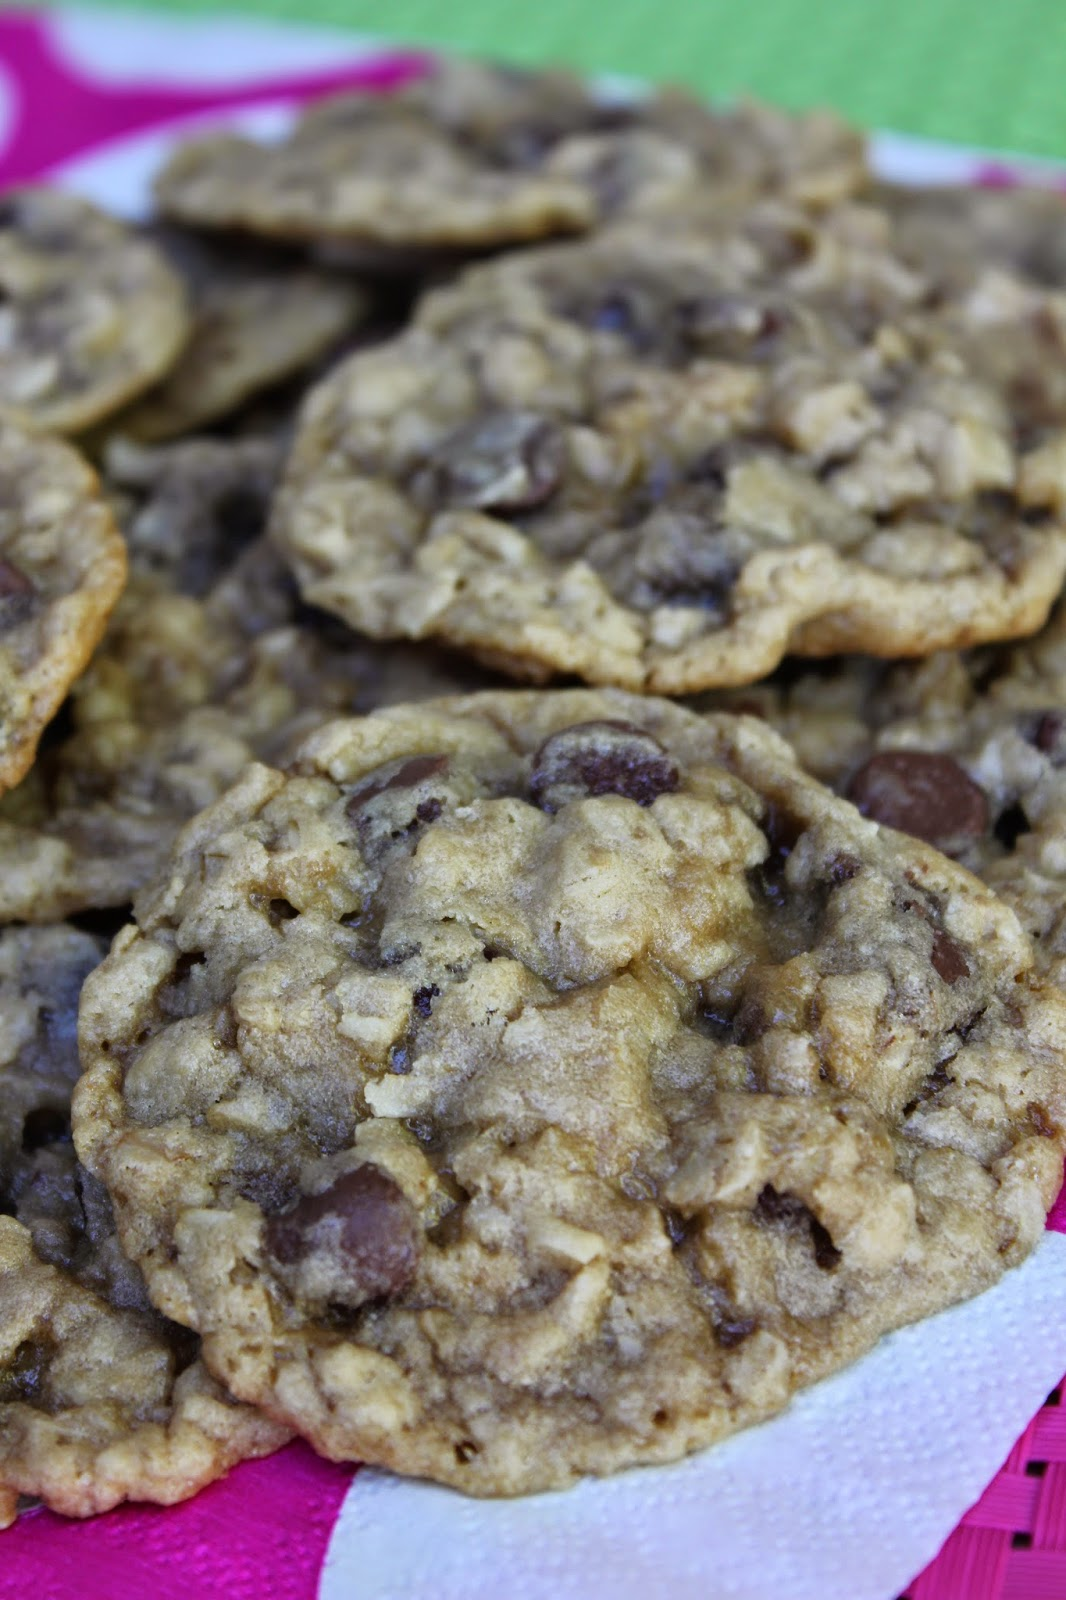 Recipe:  Cookie, Recipe:  Chocolate, healthier cookie recipe, favorite chocolate chip cookie, Recipe:  Dessert, Deals to Meals, Recipe:  Oats, Recipe:  Grains, Chewy Coconut Chocolate Chip Cookies